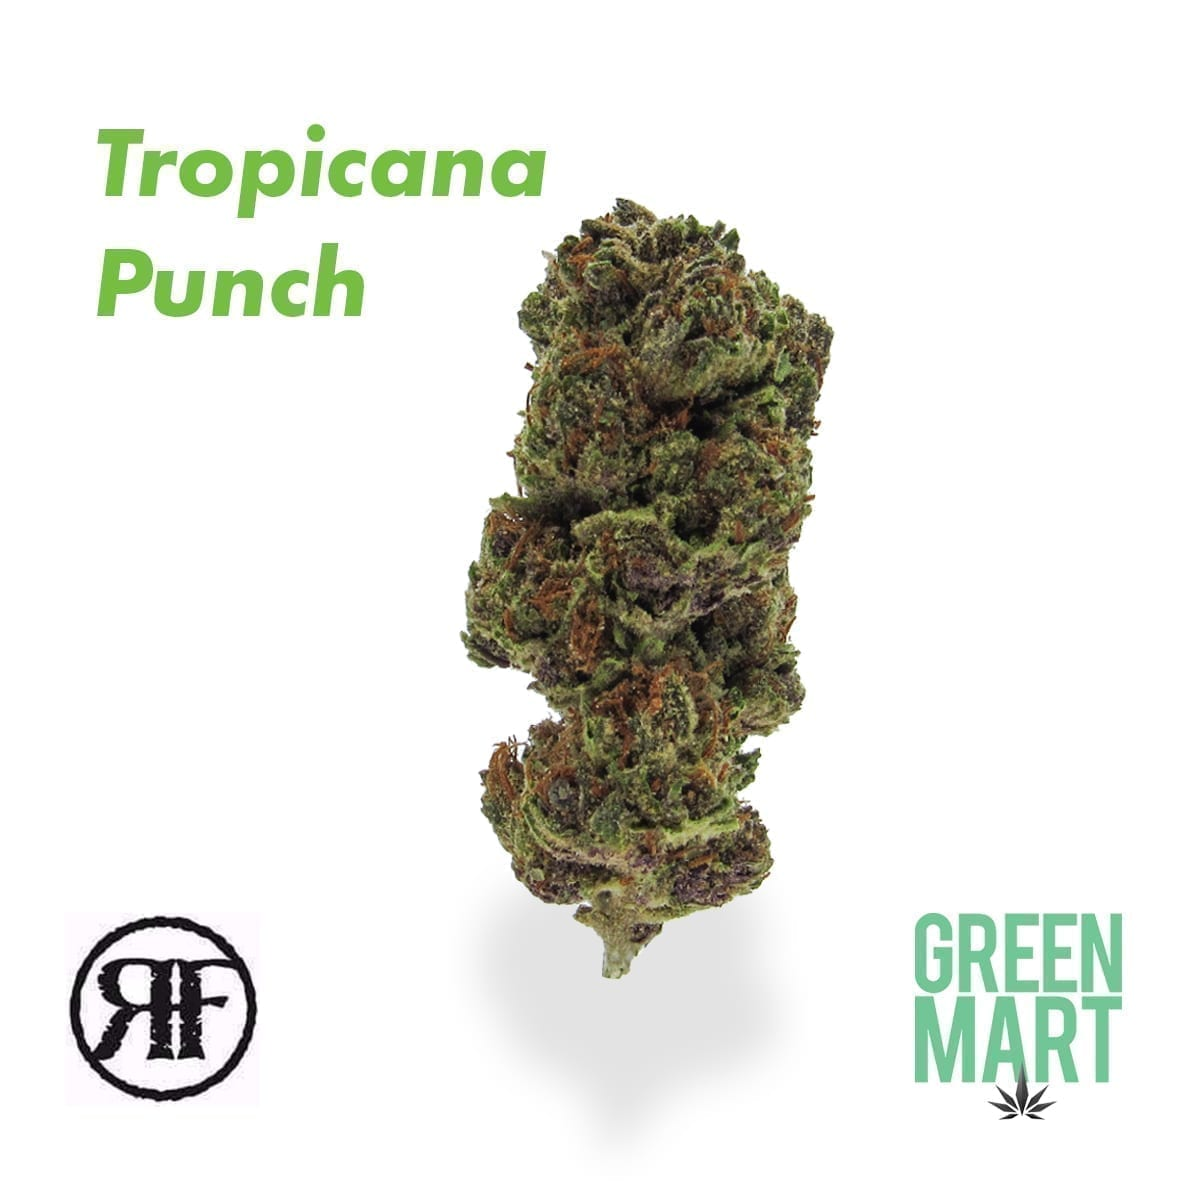 Tropicana Punch